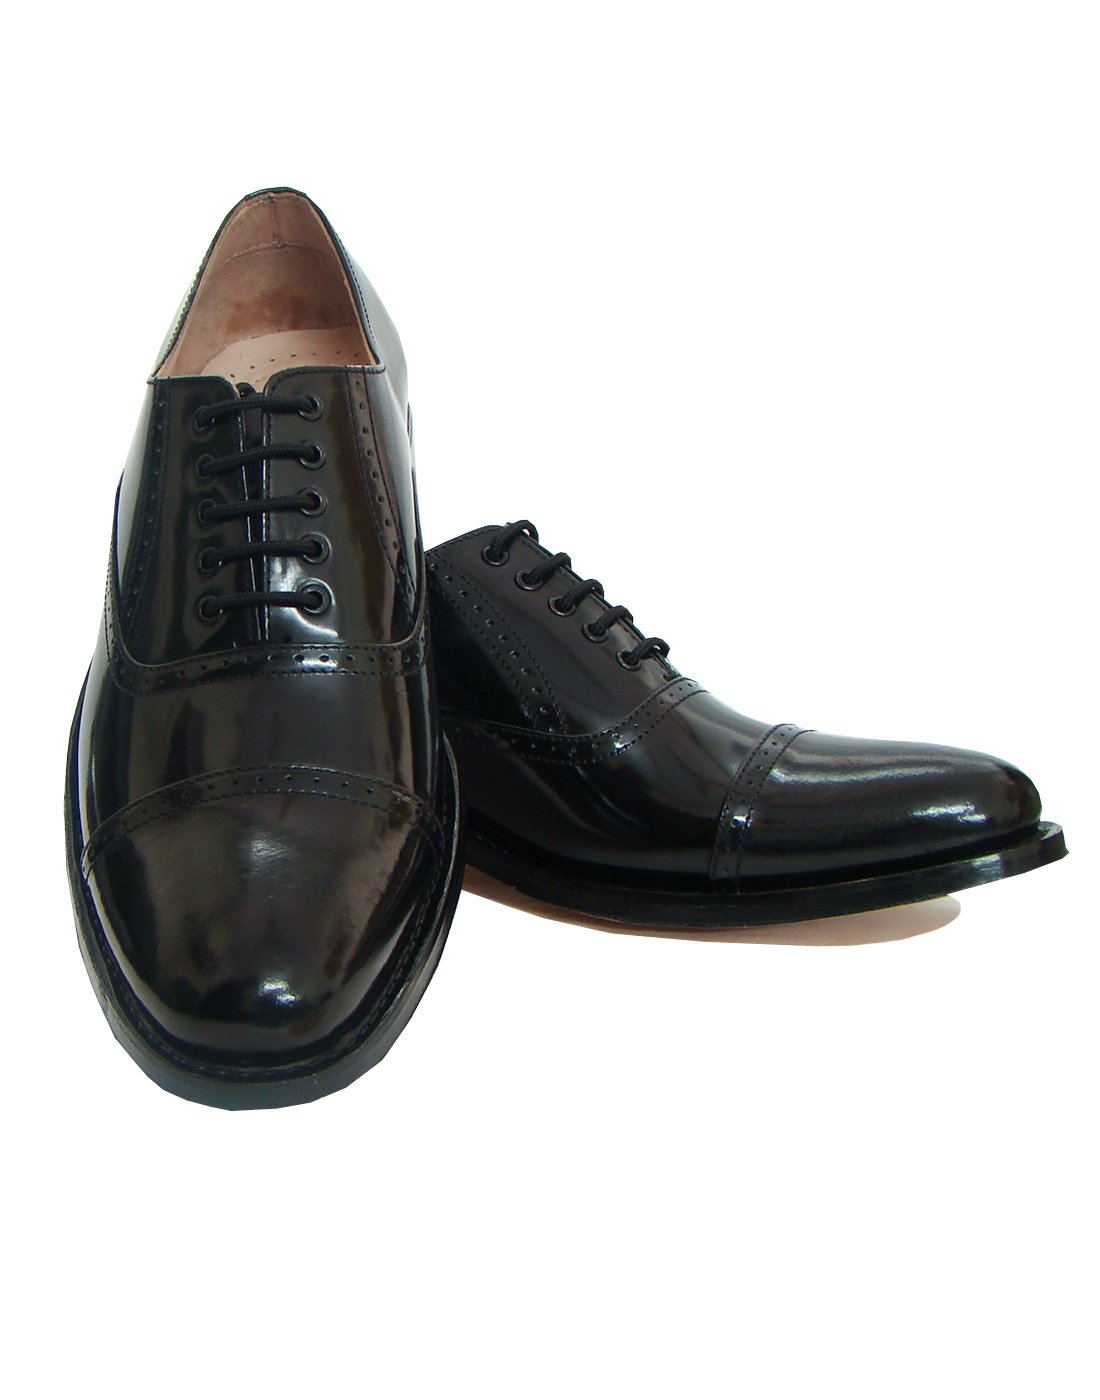 Asm Handmade Goodyear Welted Black Oxford/Brogue Dress Leather Shoes With Argentina Leather Sole, Leather Insole, Fully Leather Lining and PU Foot Pad For Optimum Comfort For Men. Article H103 (8)